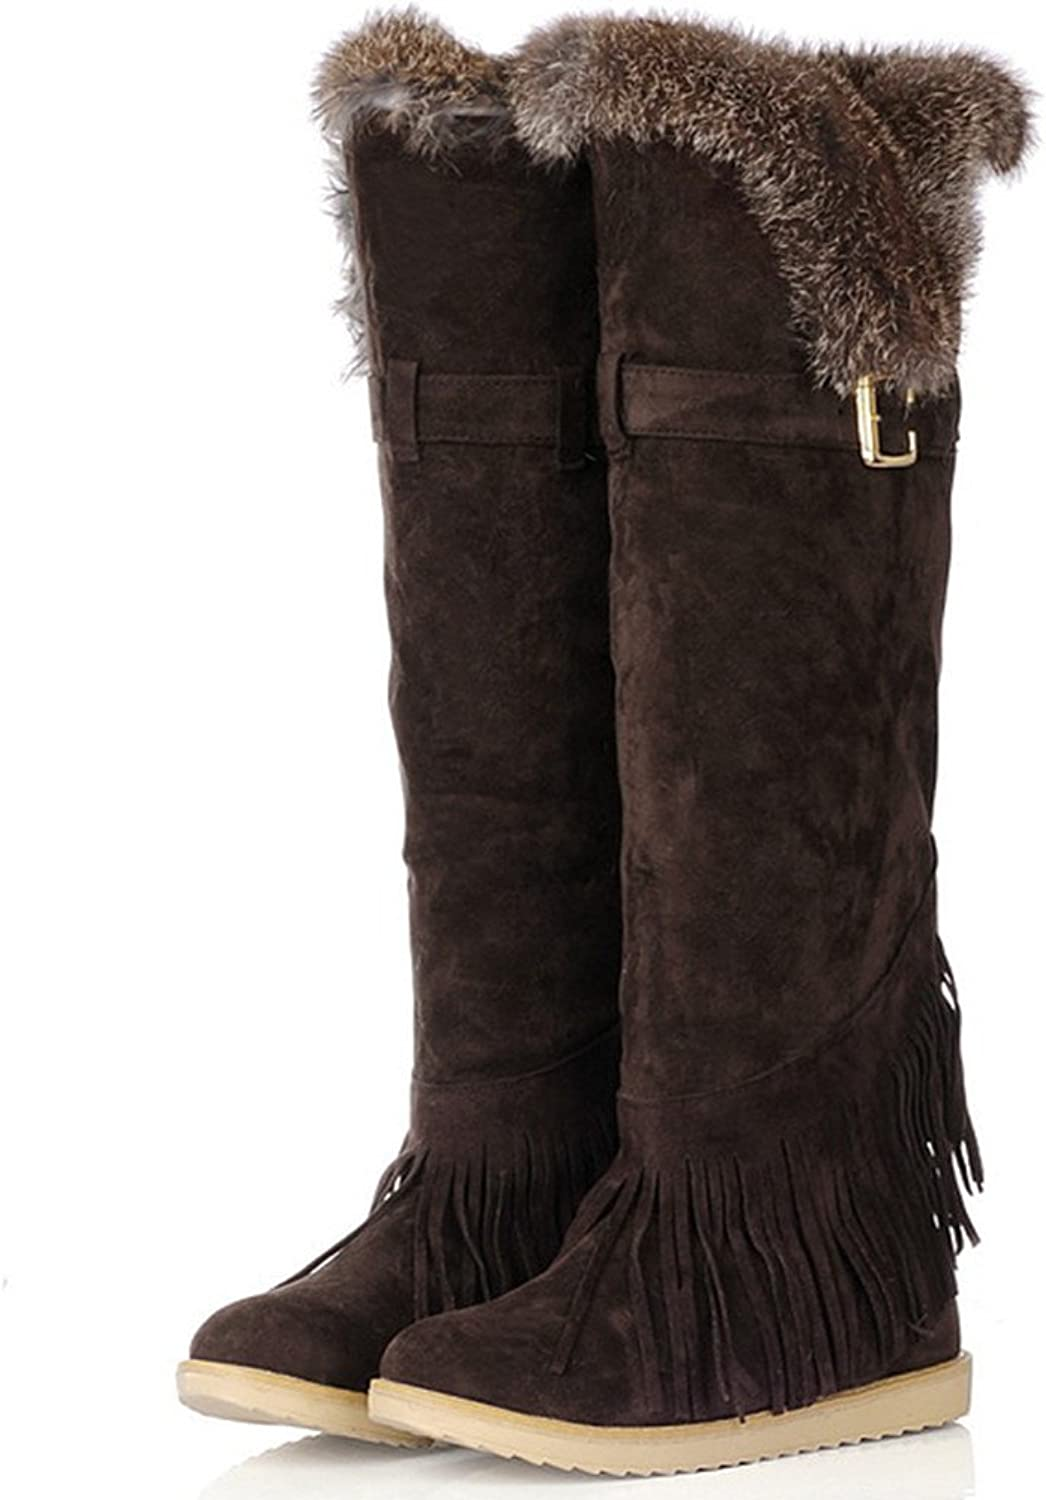 Fashion Heel Womens Flat Heel Round Toe Fur Collar Over The Knee Boots Long Snow Boot